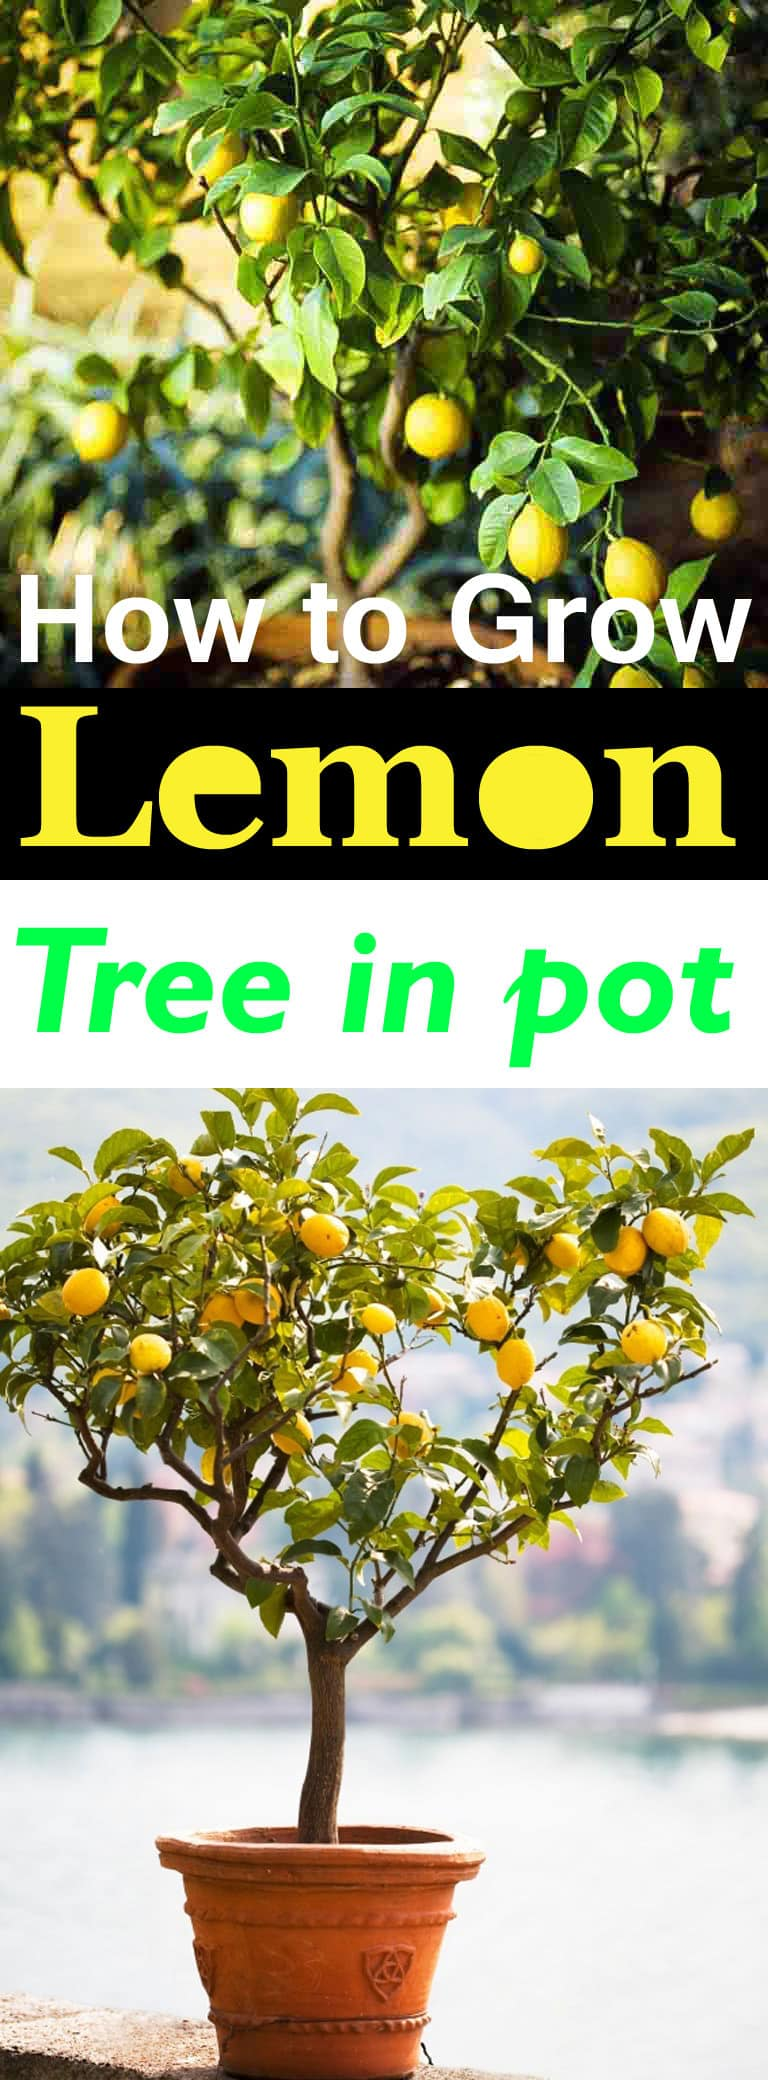 How to Grow a Lemon Tree in Pot | Care and Growing